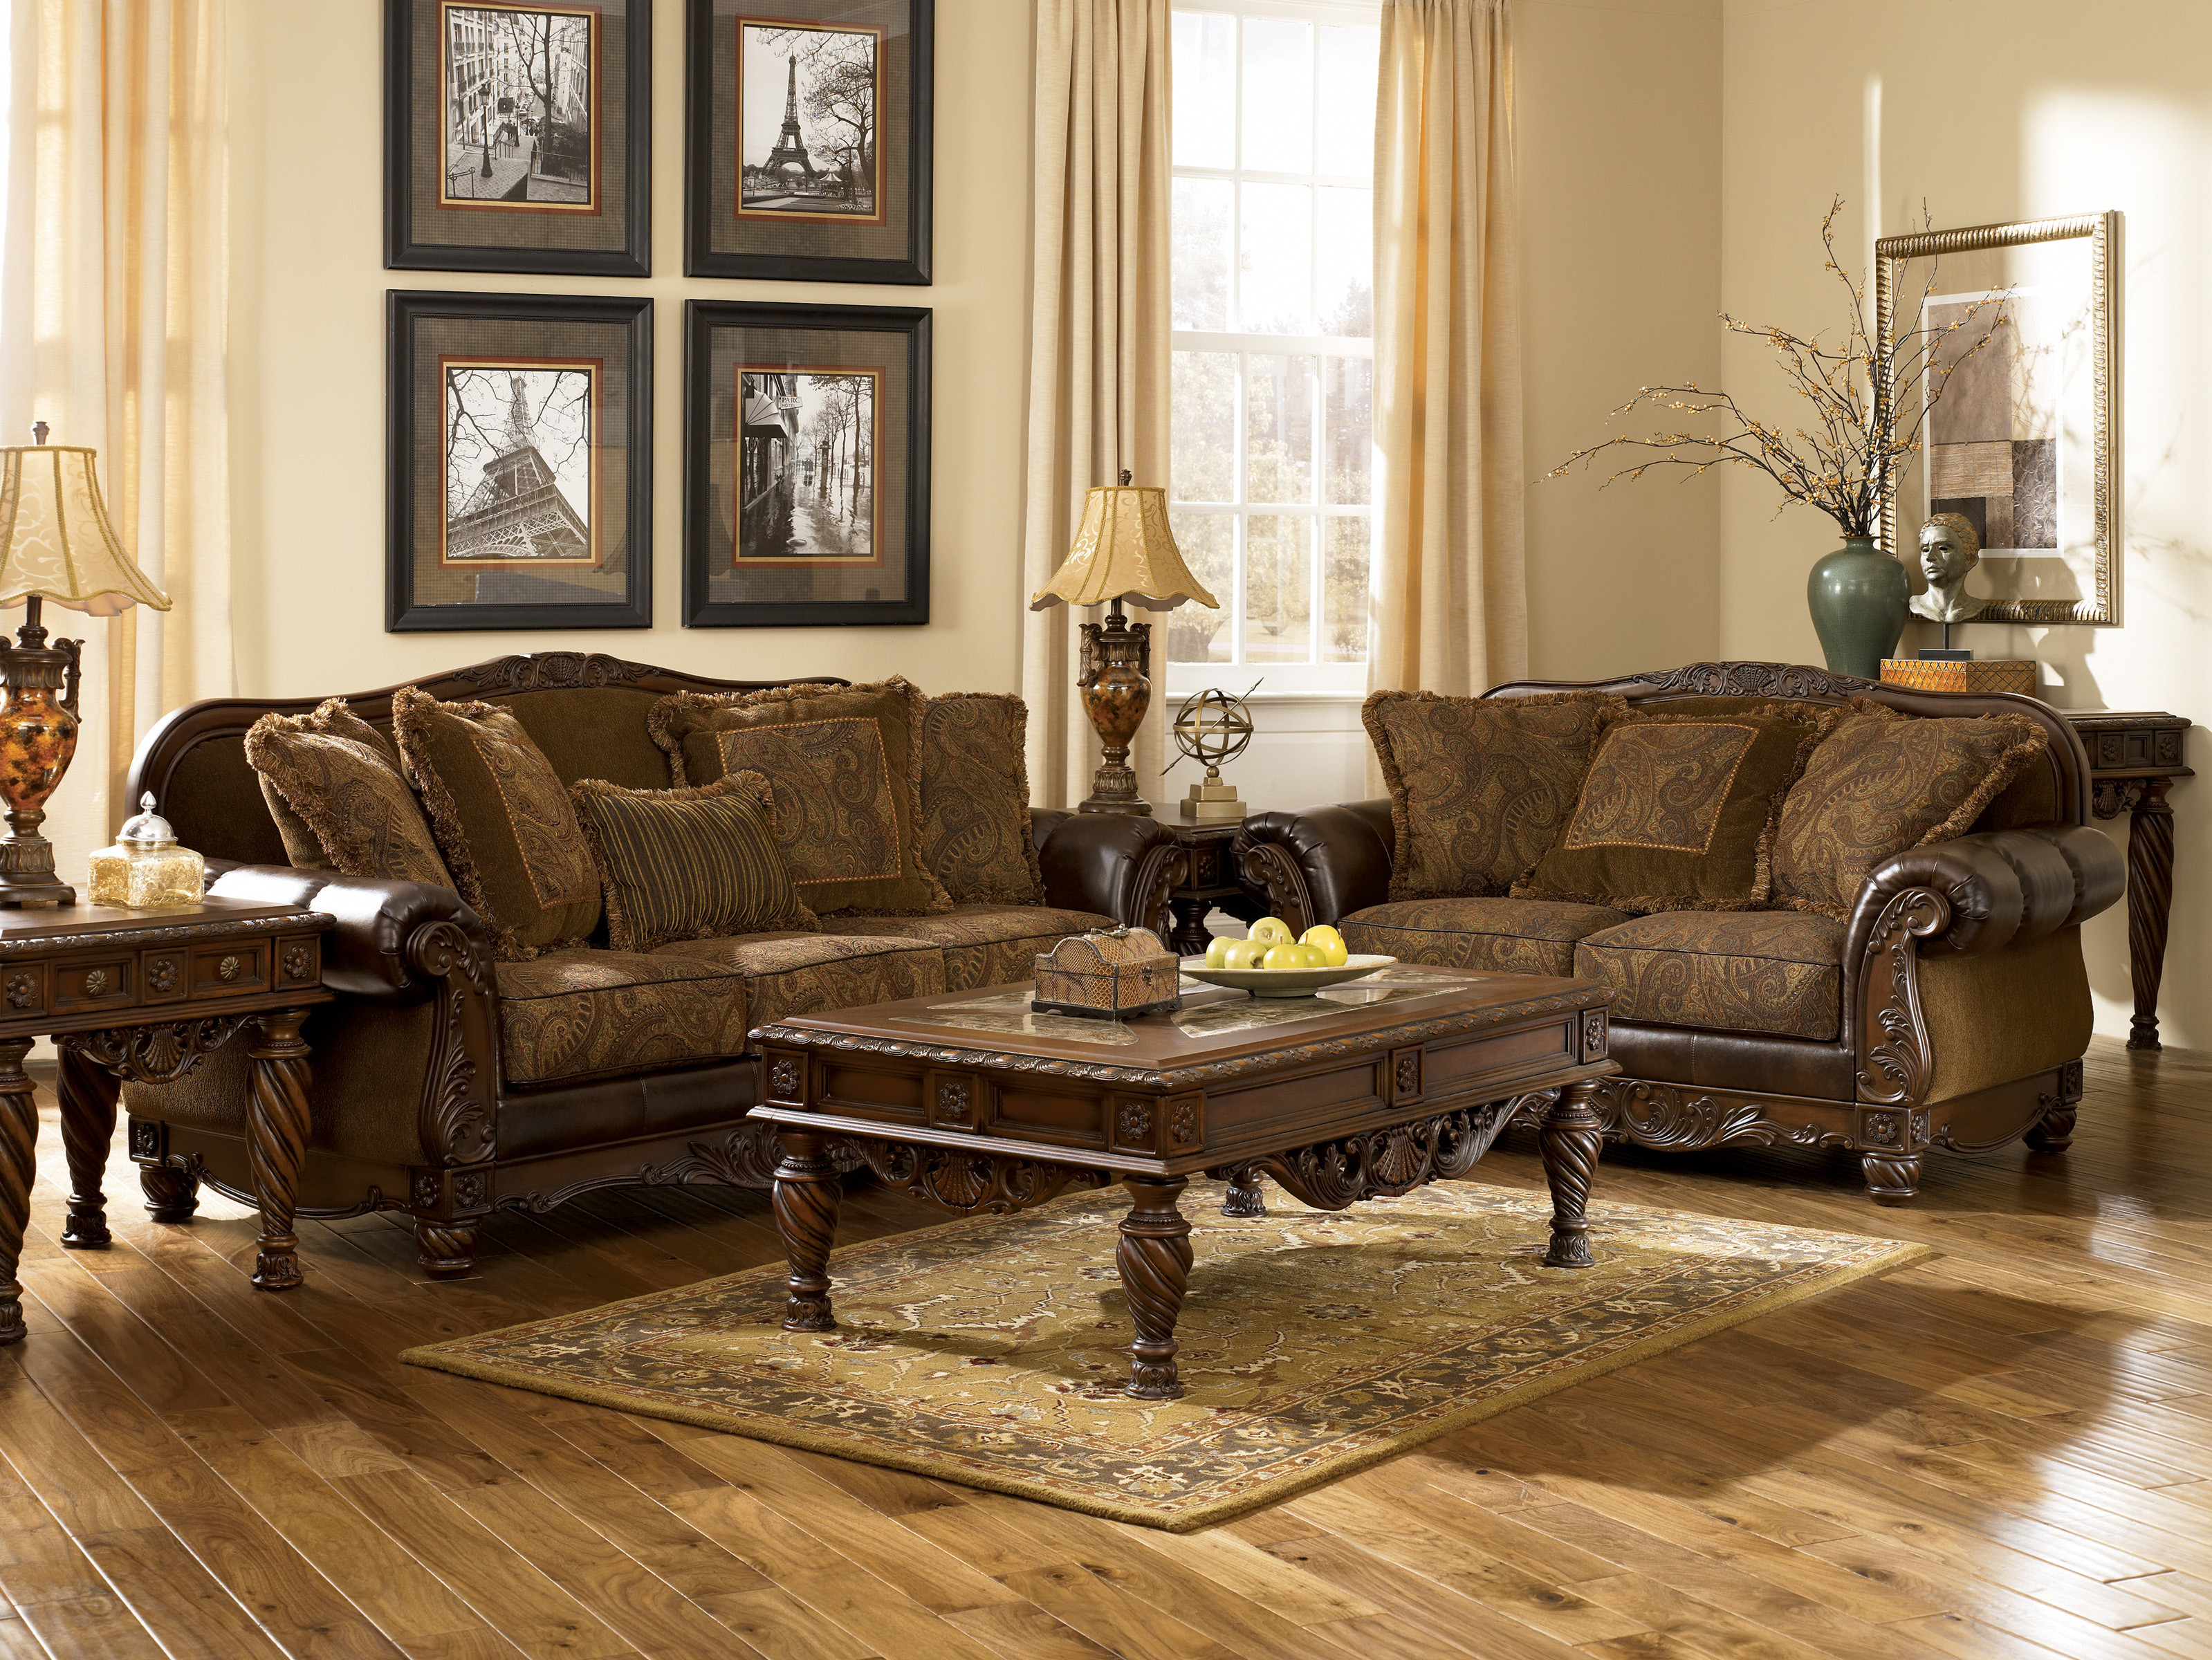 Best ideas about Living Room Couches . Save or Pin Ashley Furniture Fresco DuraBlend Antique Living Now.